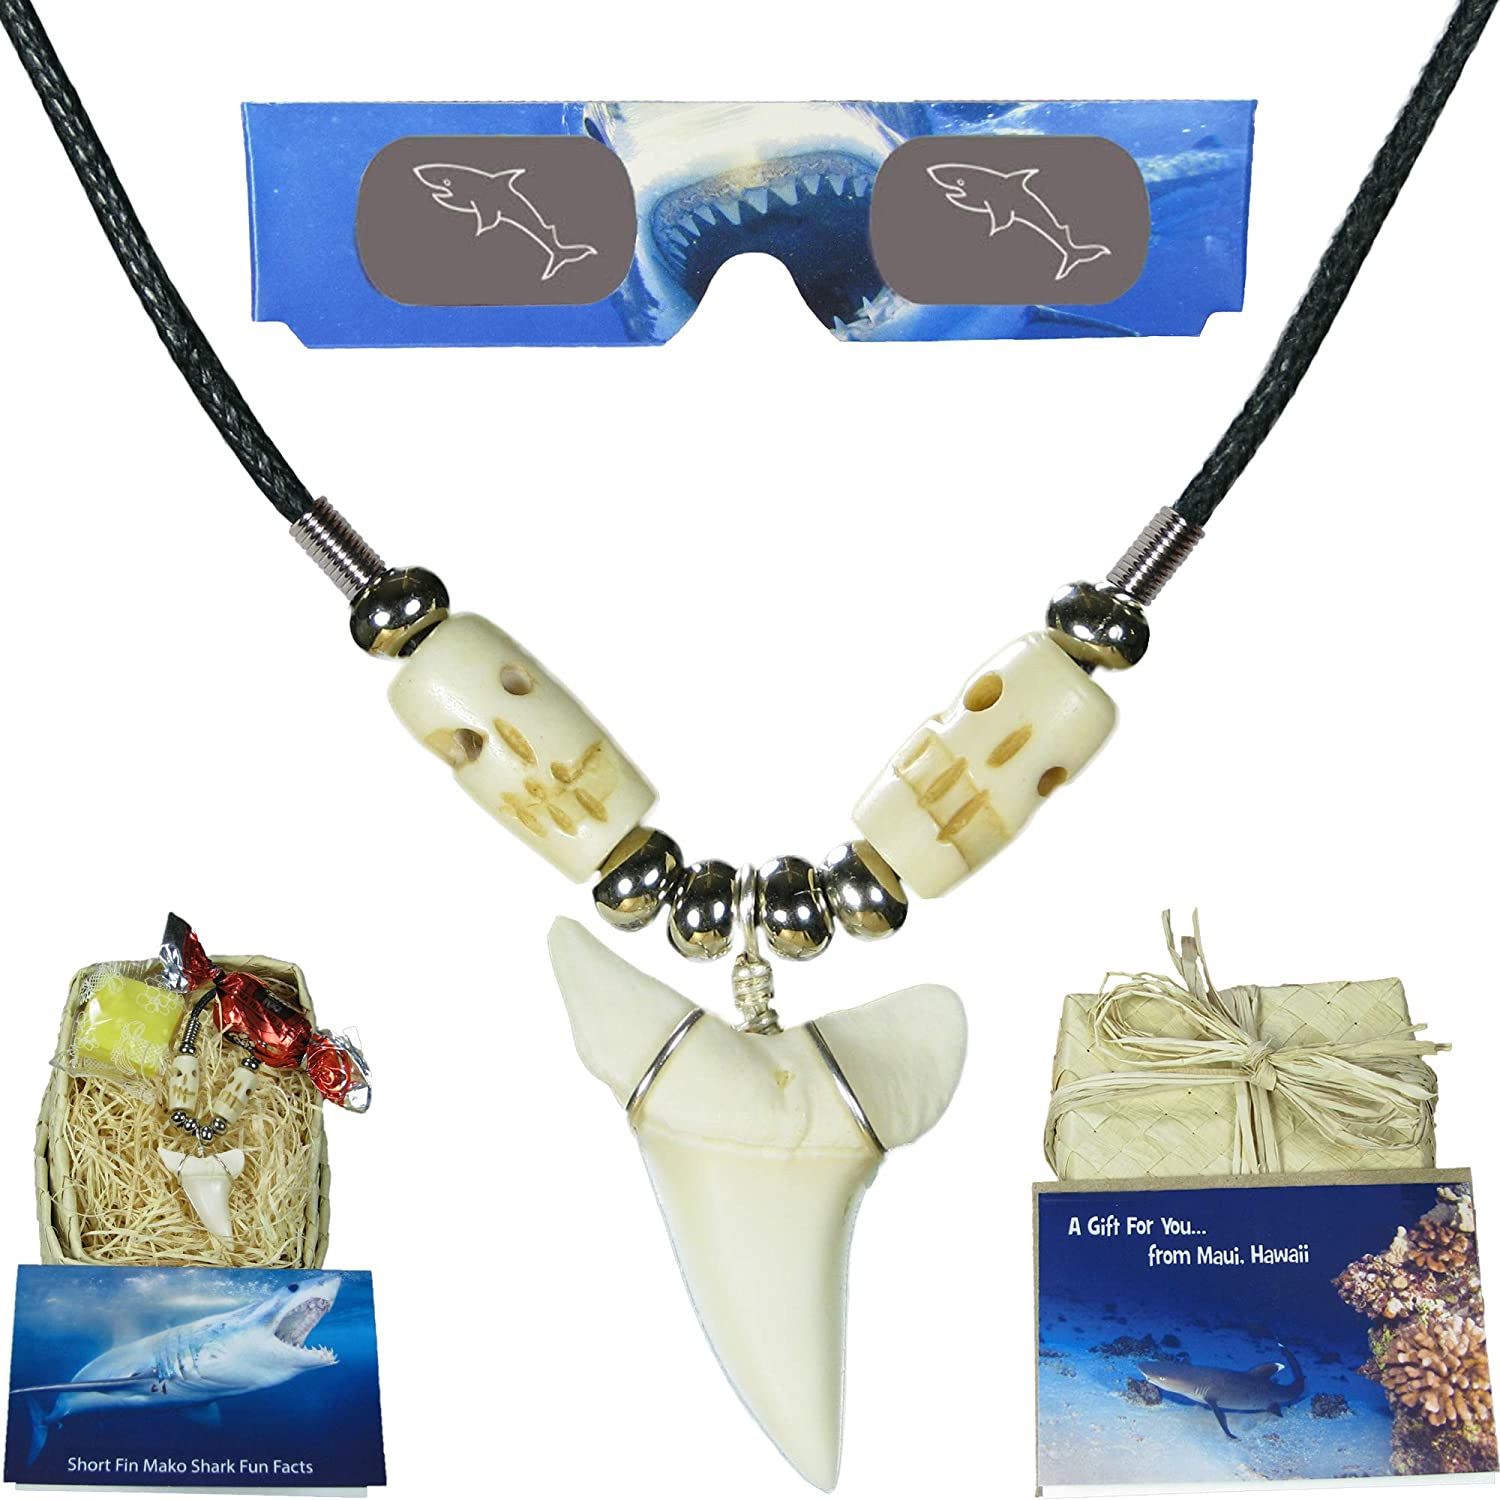 Real Hawaiian Shark Tooth Necklace - Gift Set for Kids, Boys, Girls, Men, Women and Surfers - Bundle Features Hawaiian Gift Box, 3D Shark Glasses, Gift Card, Fun Facts Card and Hawaiian Candy